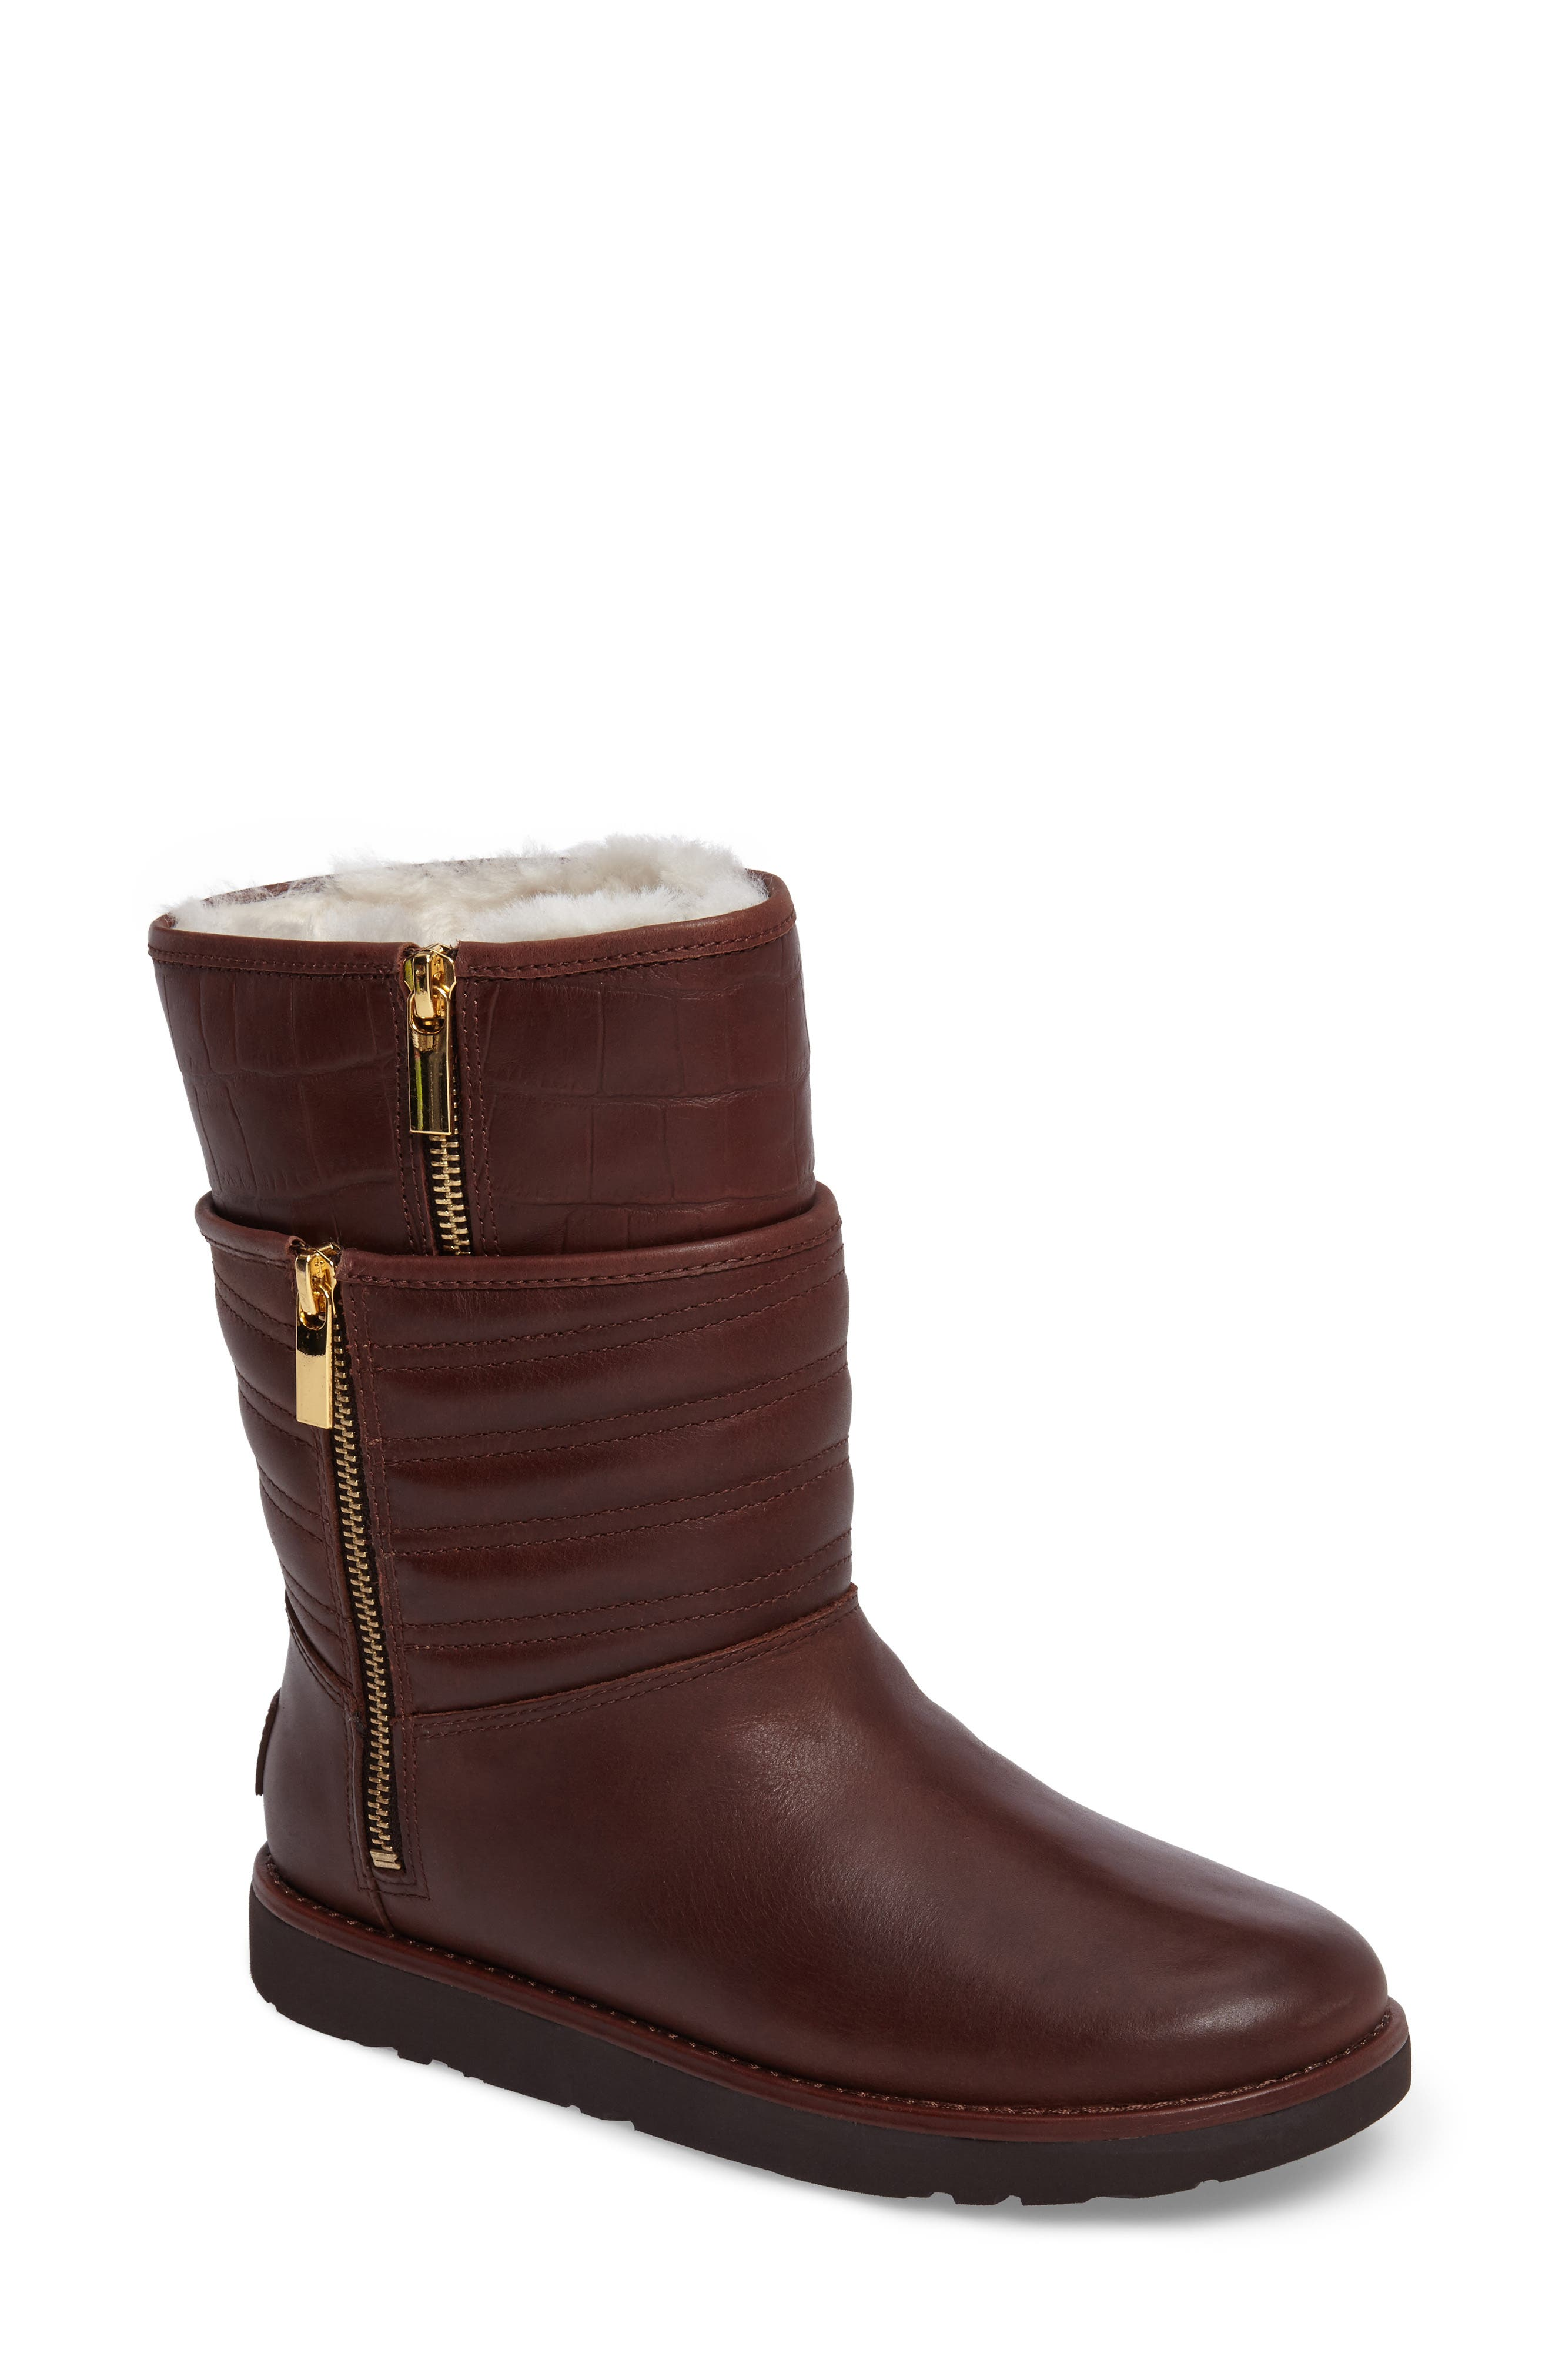 Main Image - UGG® Aviva Genuine Shearling Lined Boot (Women)